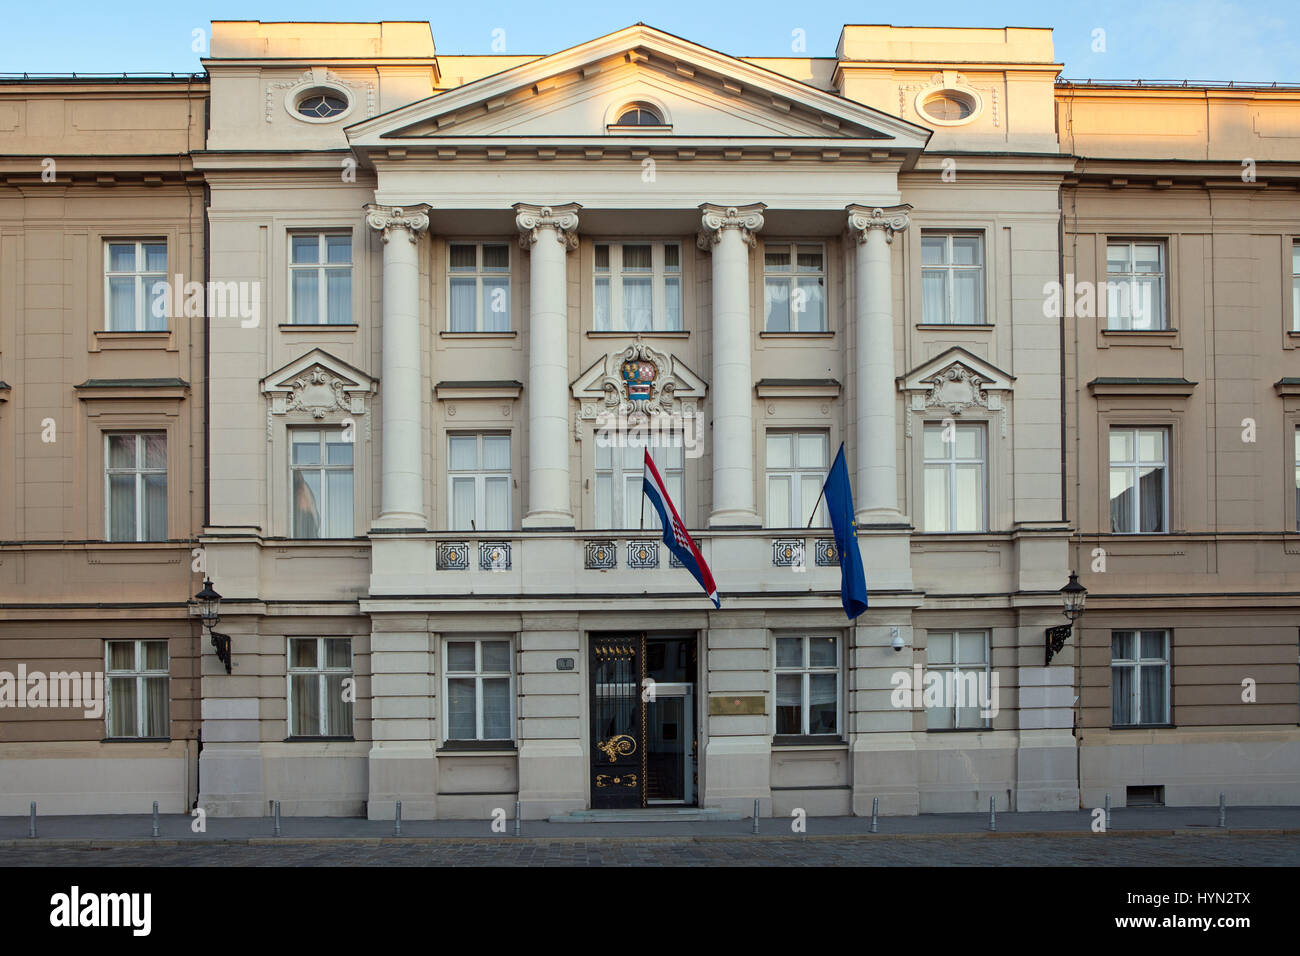 The Croatian Sabor or Parliament in Zagreb, Croatia. The current building dates from the beginning of the 20th century. - Stock Image